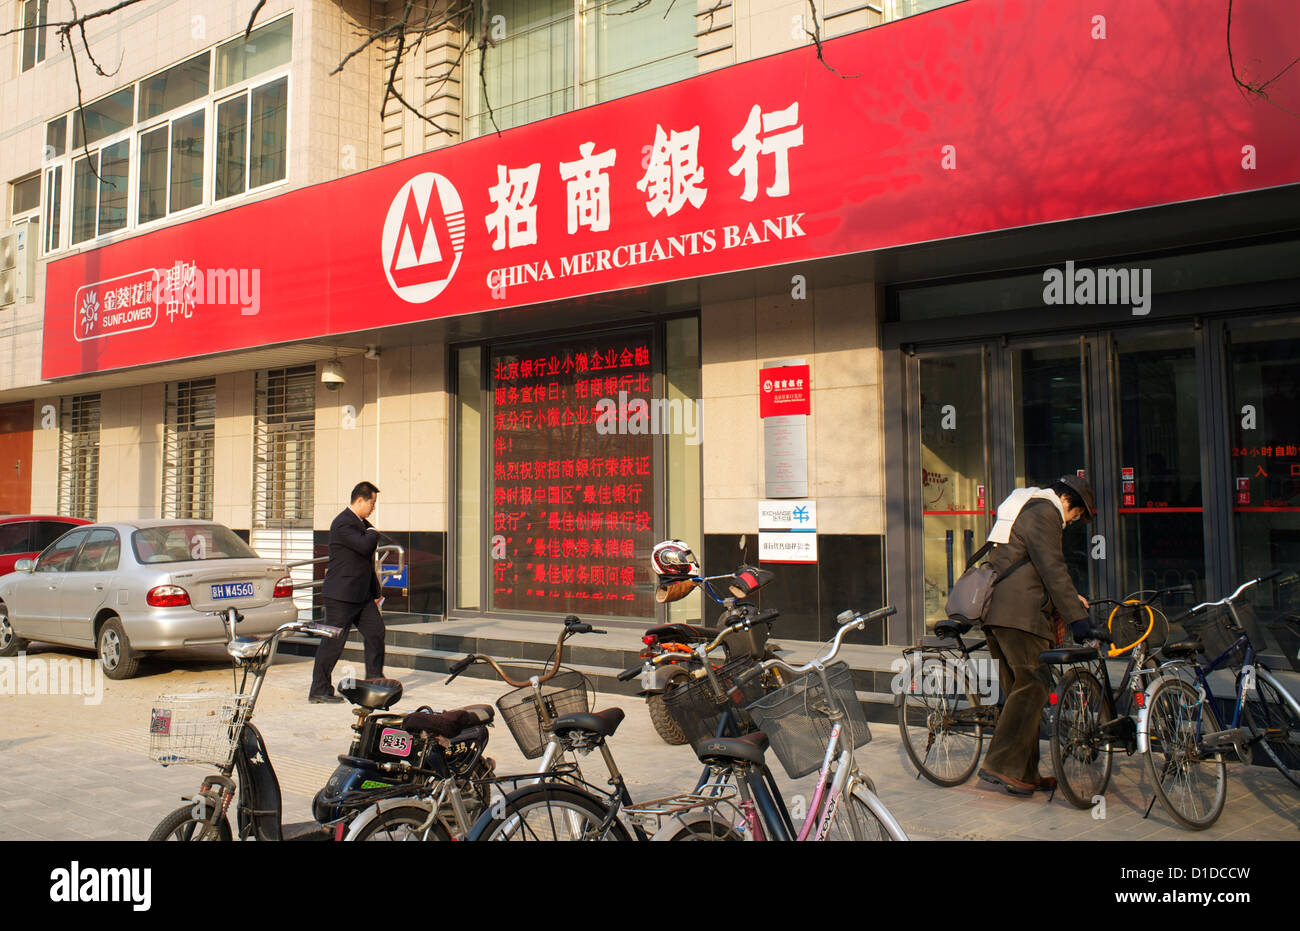 A branch of China Merchants Bank in Beijing, China. - Stock Image